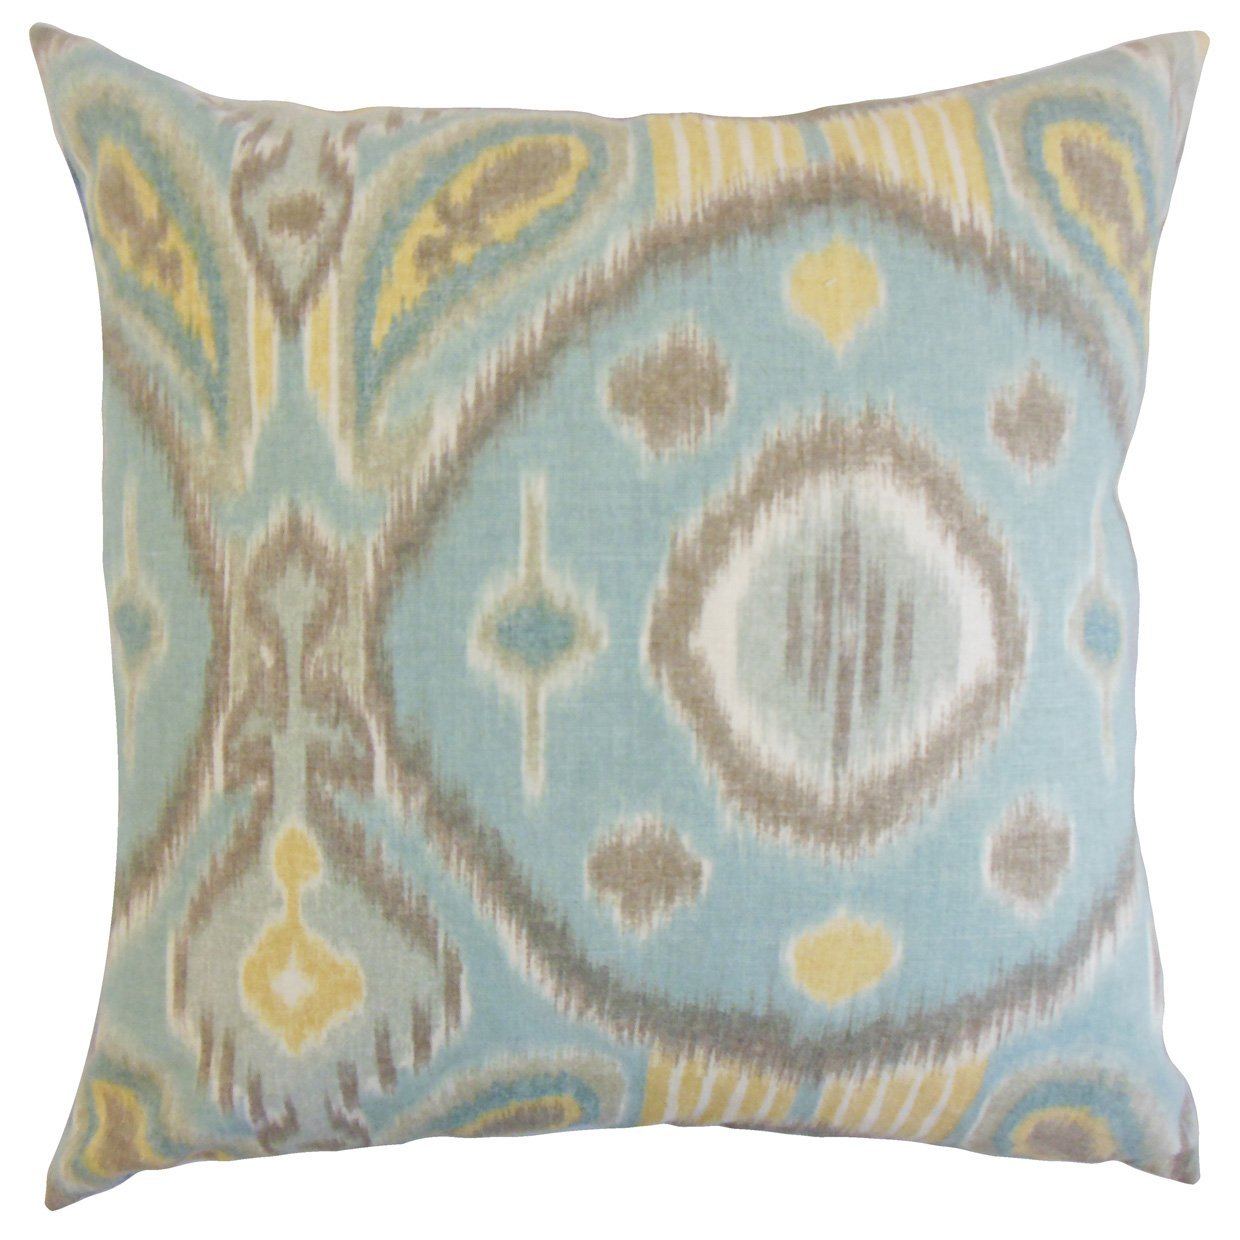 The Pillow Collection Janvier Ikat Bedding Sham Spa King//20 x 36